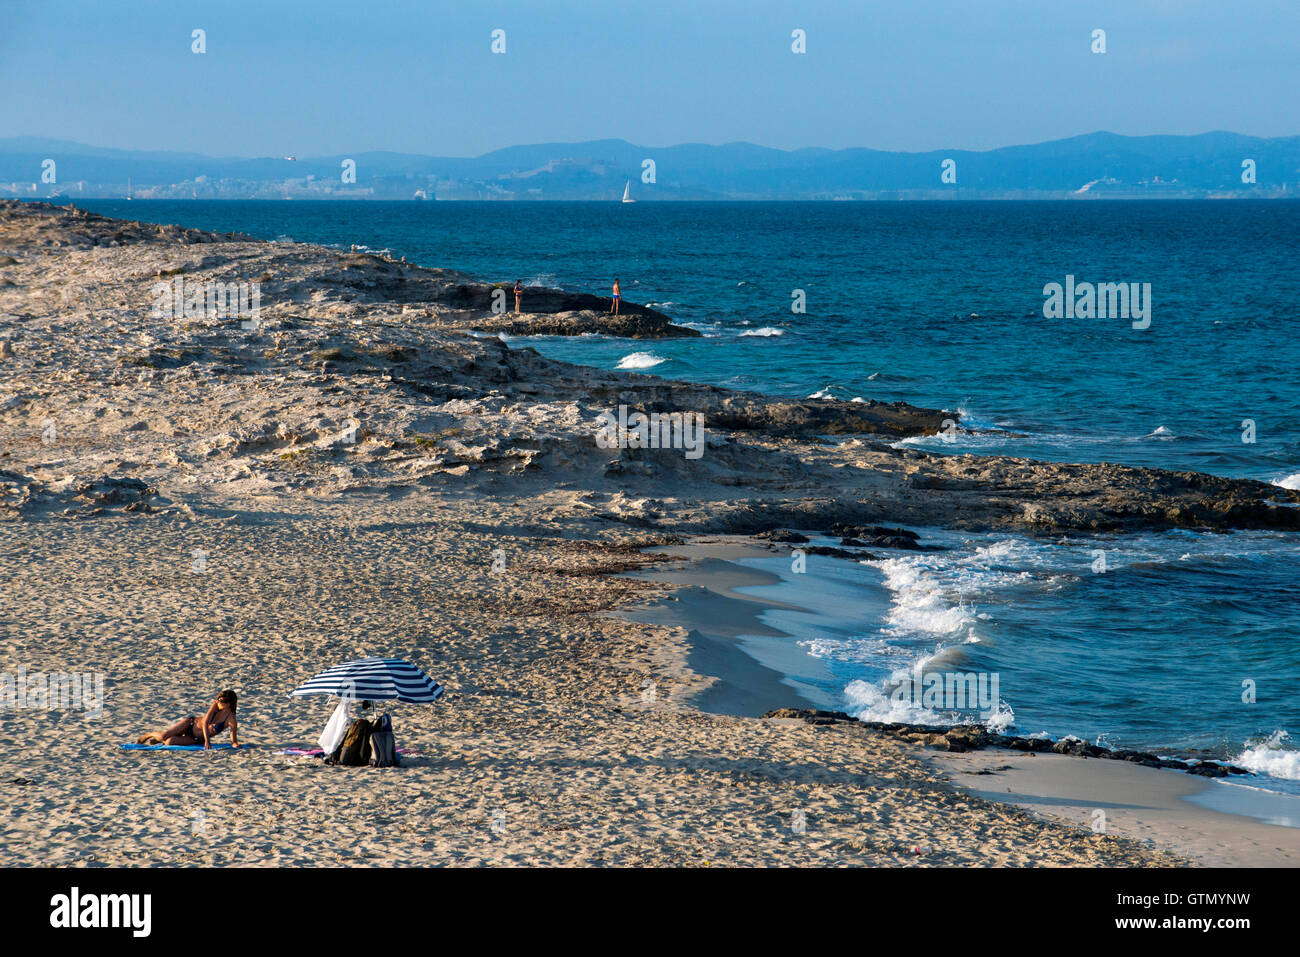 Sa Roqueta Beach and Ses Illetes Beach, Balearic Islands, Formentera, Spain. Nice girl lying in the sand. - Stock Image